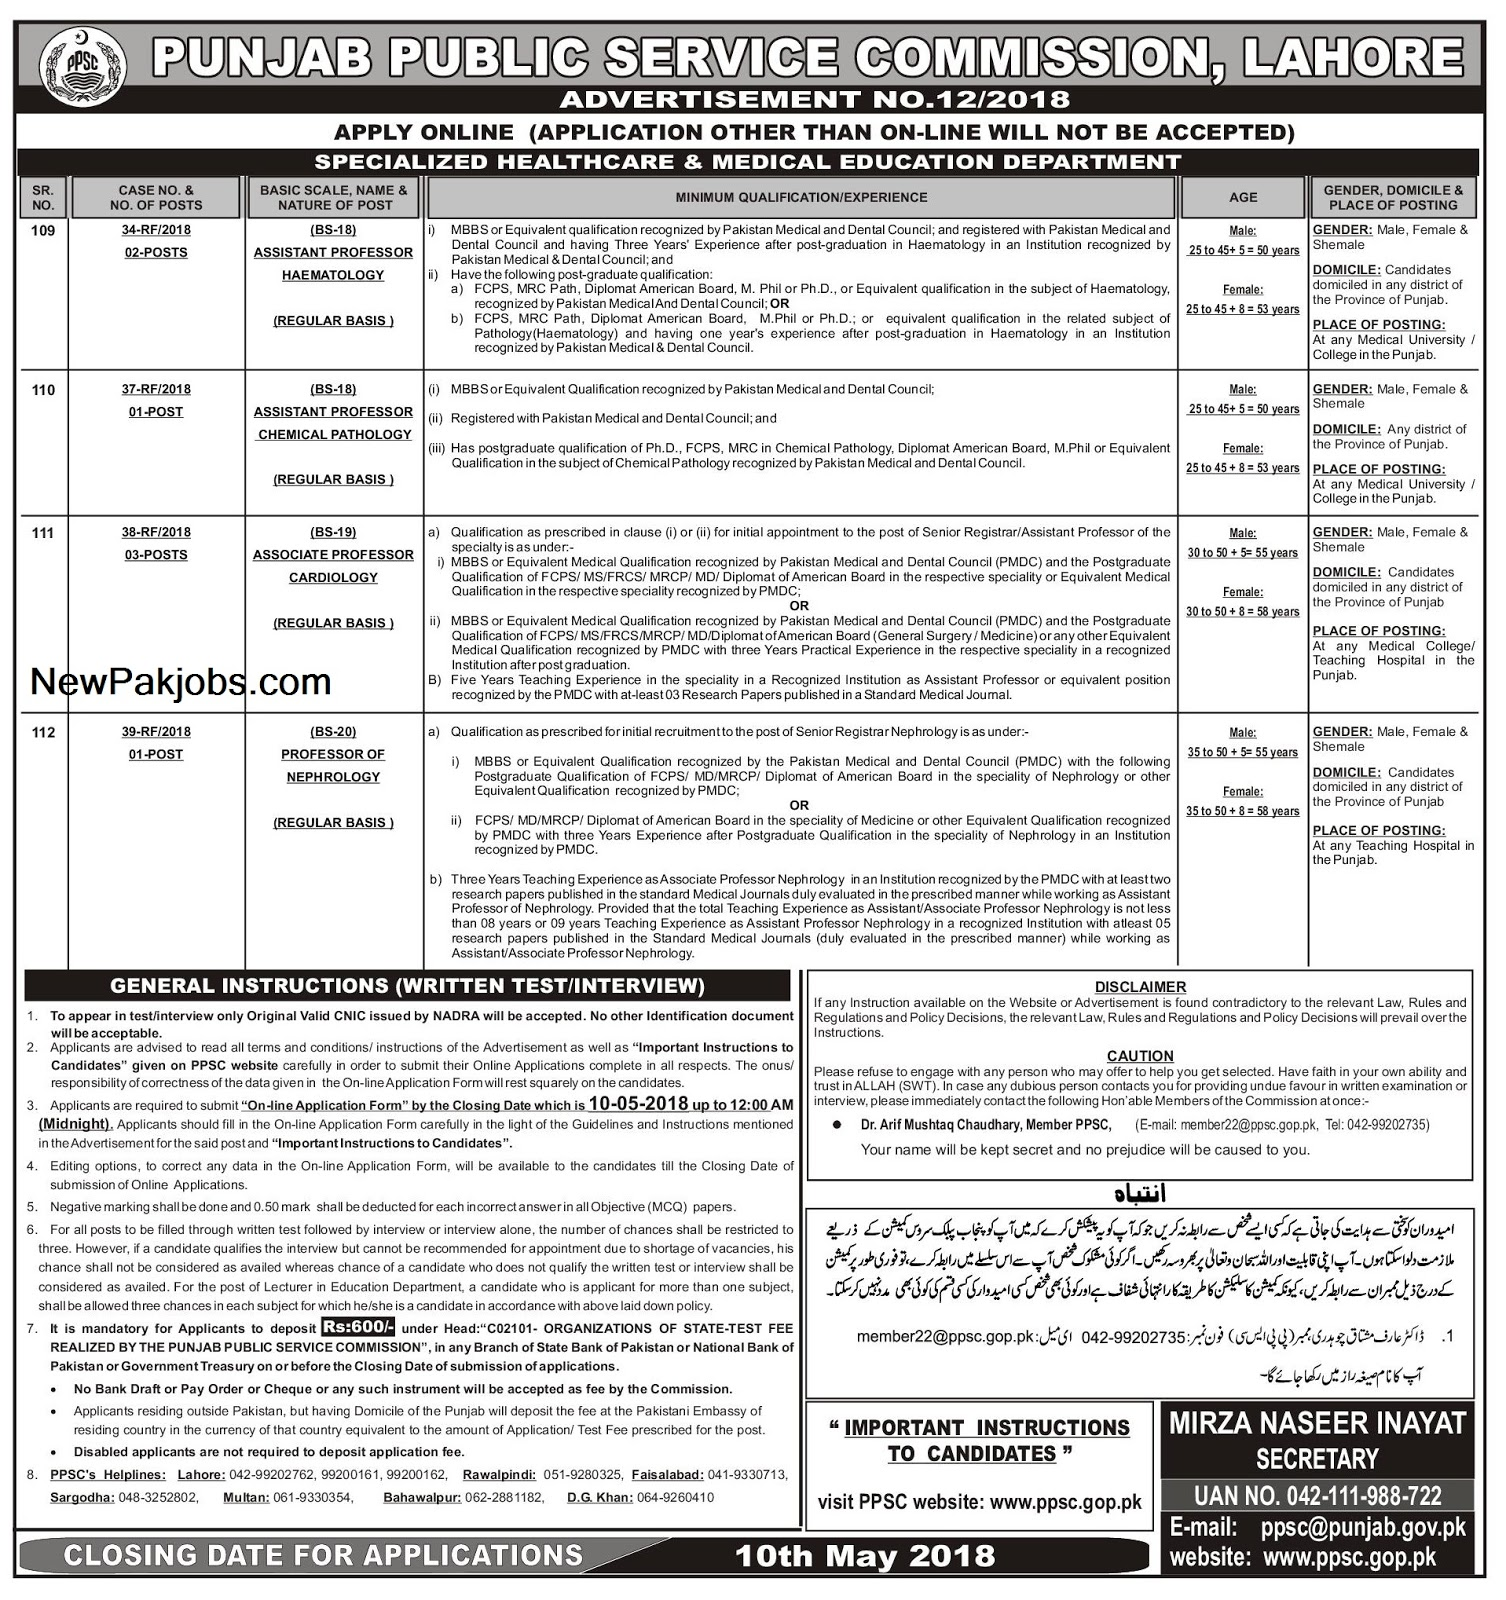 Current New PPSC jobs Advertisement 12/201